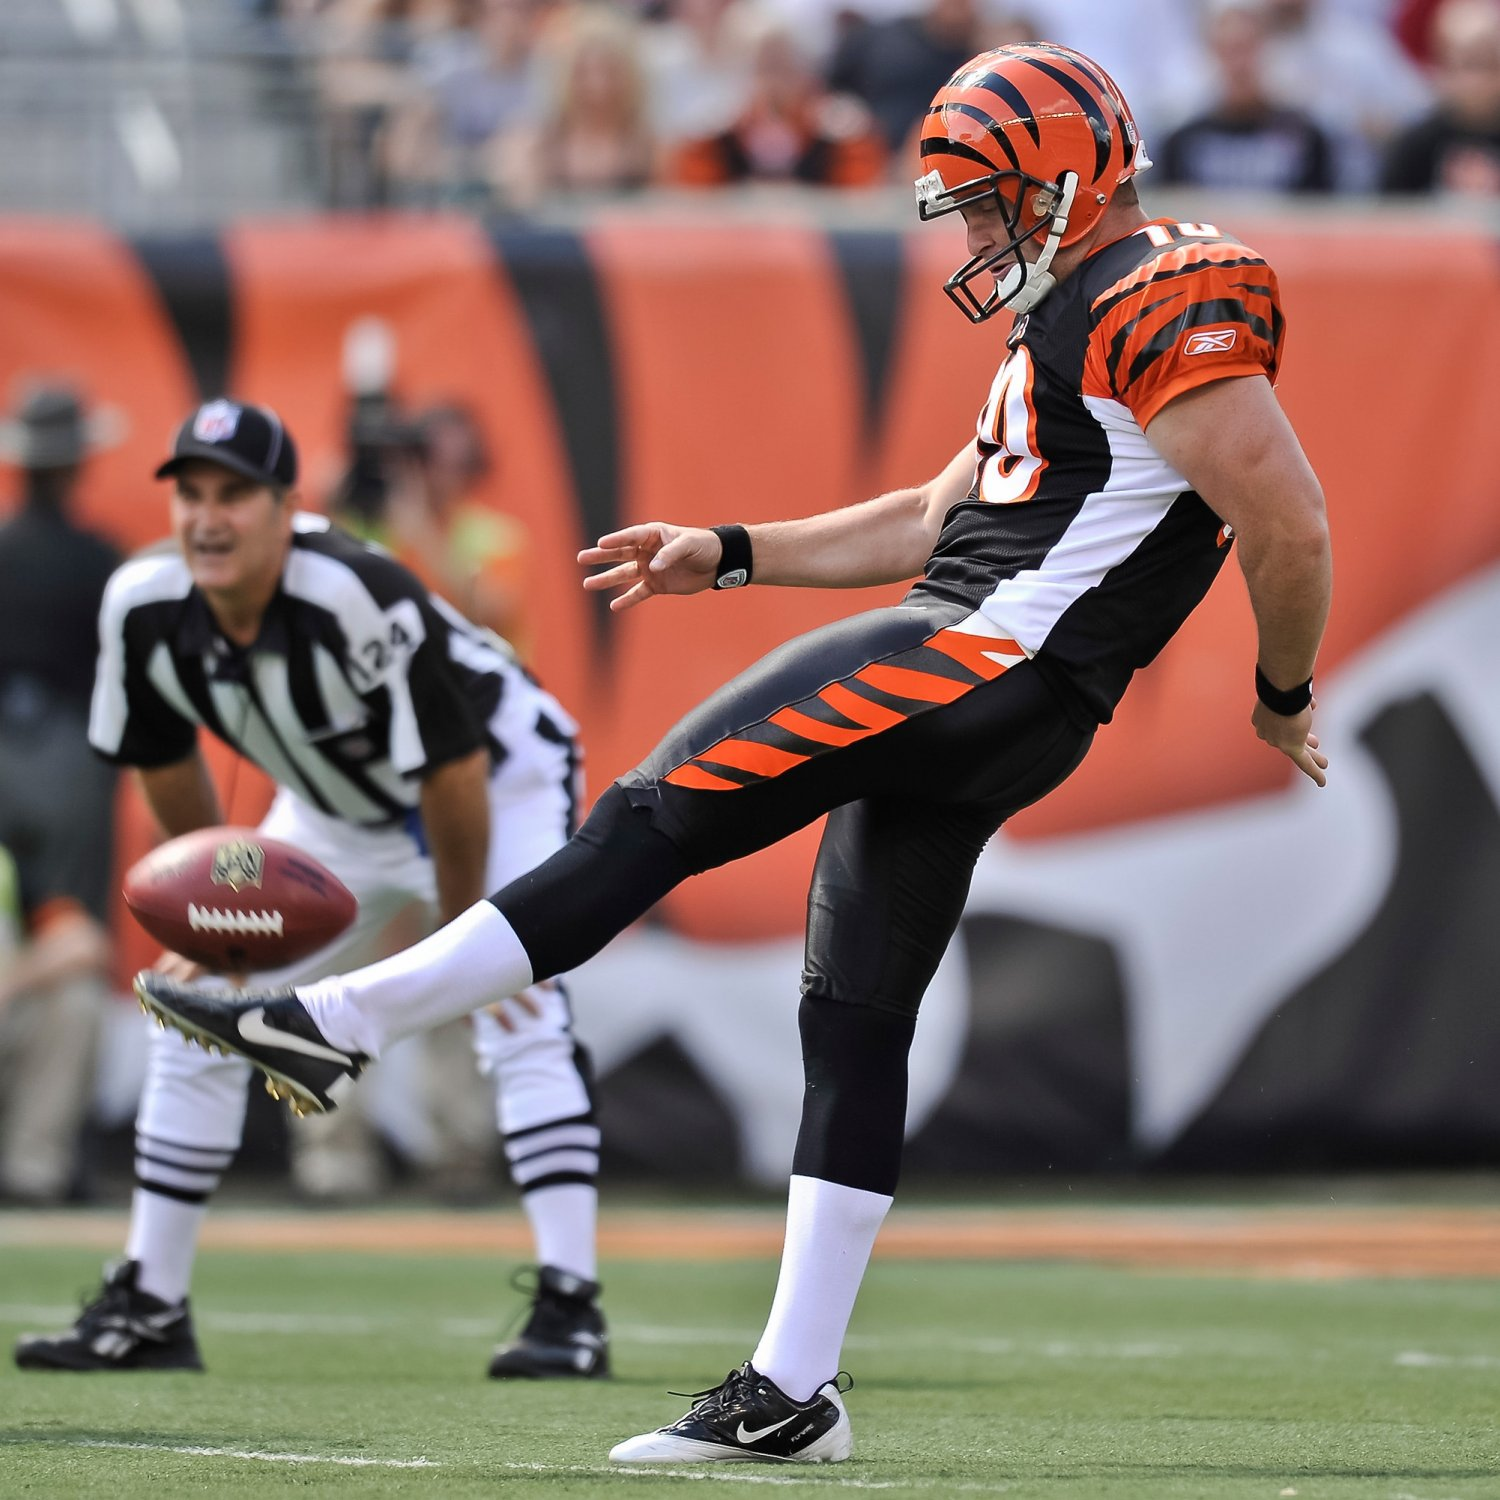 examining what a kickers job is in the sport of football Nfl kickers fascinate, infuriate and have some wondering if  were out  practicing, the kicker would be in the locker room, studying  no other position in  sports has more inherent pressure associated with the job and yet.